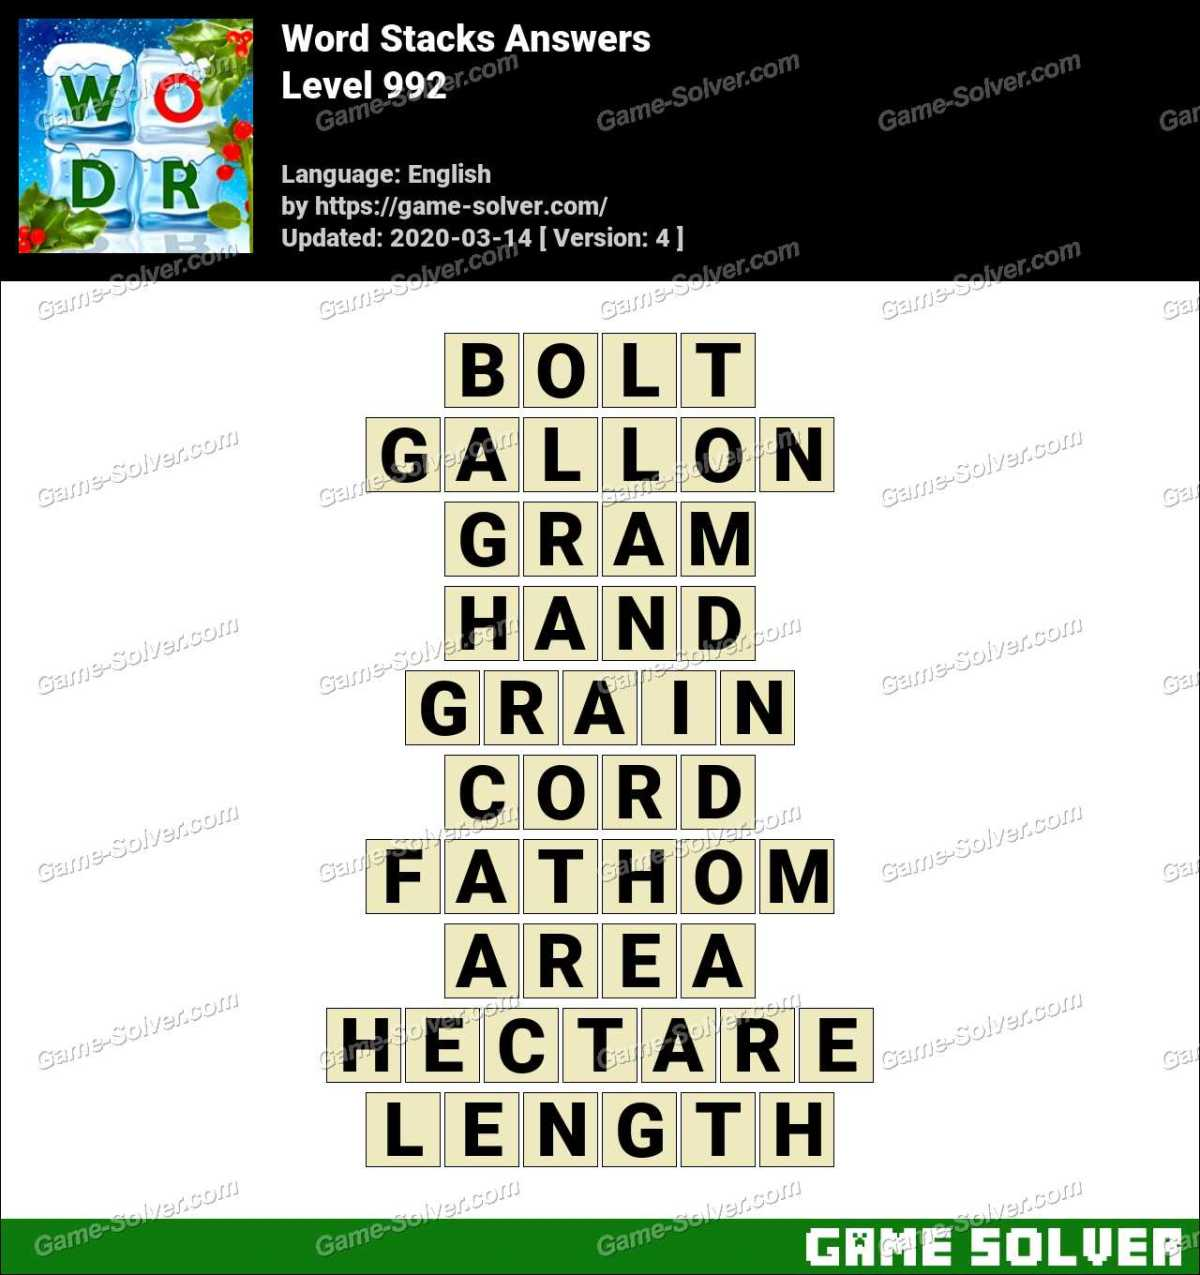 Word Stacks Level 992 Answers